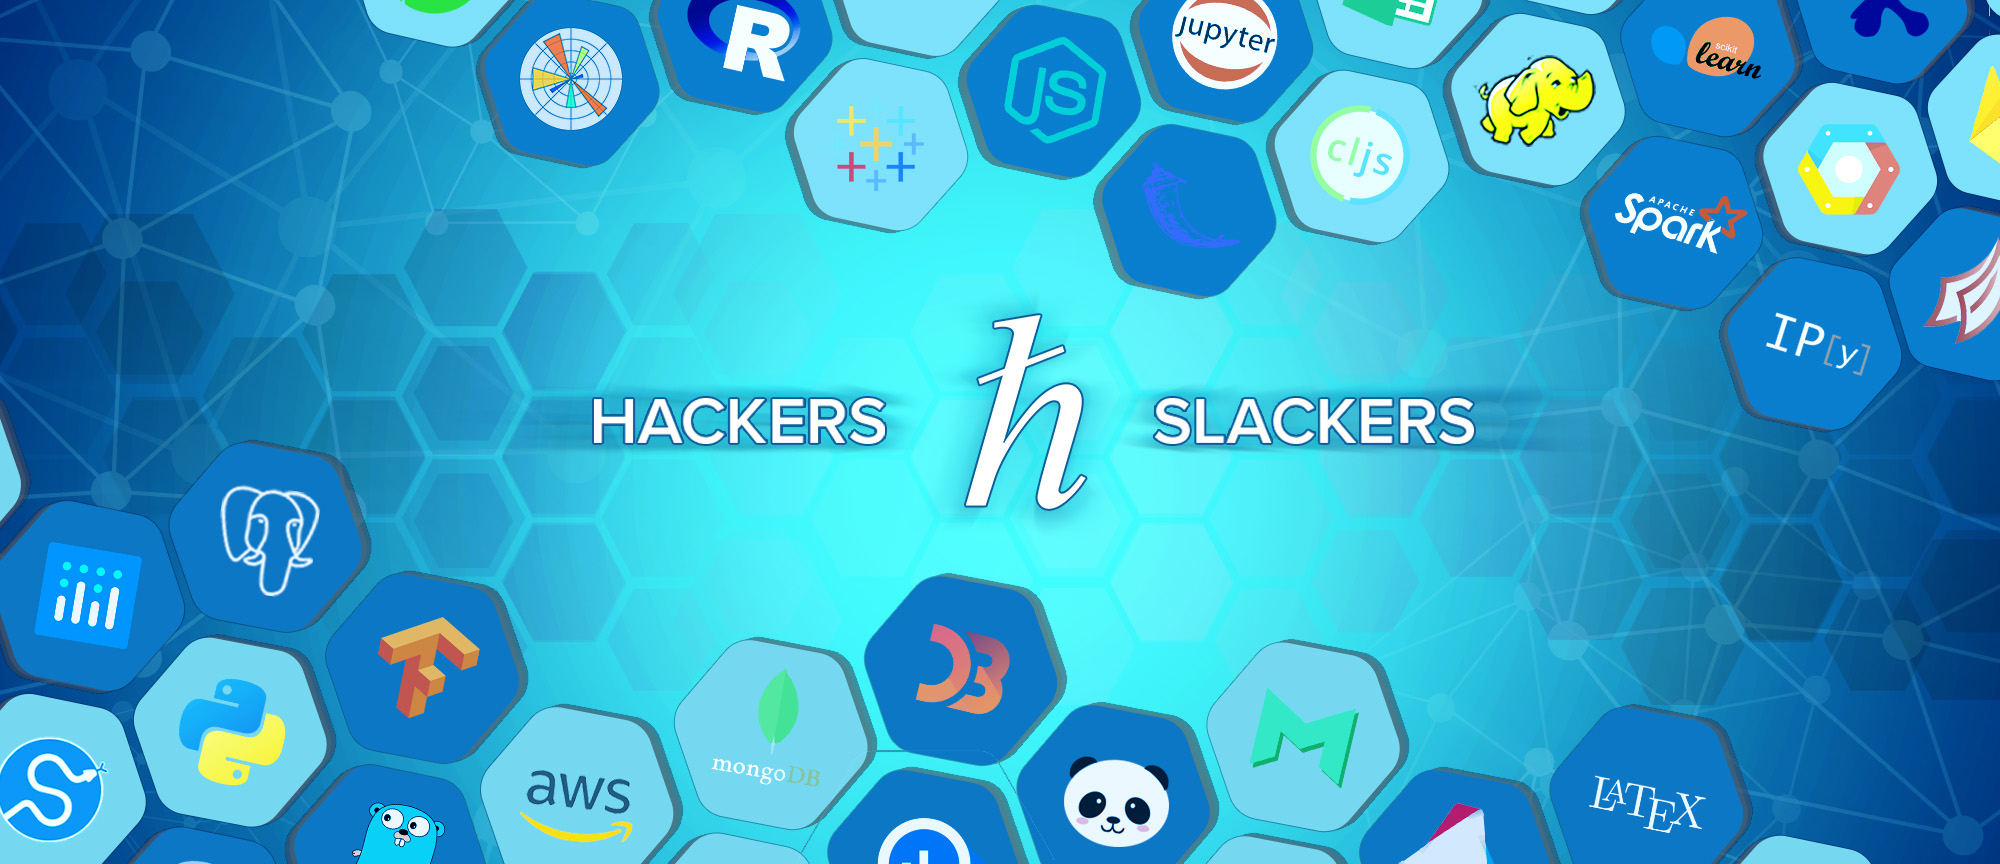 Hackers and Slackers